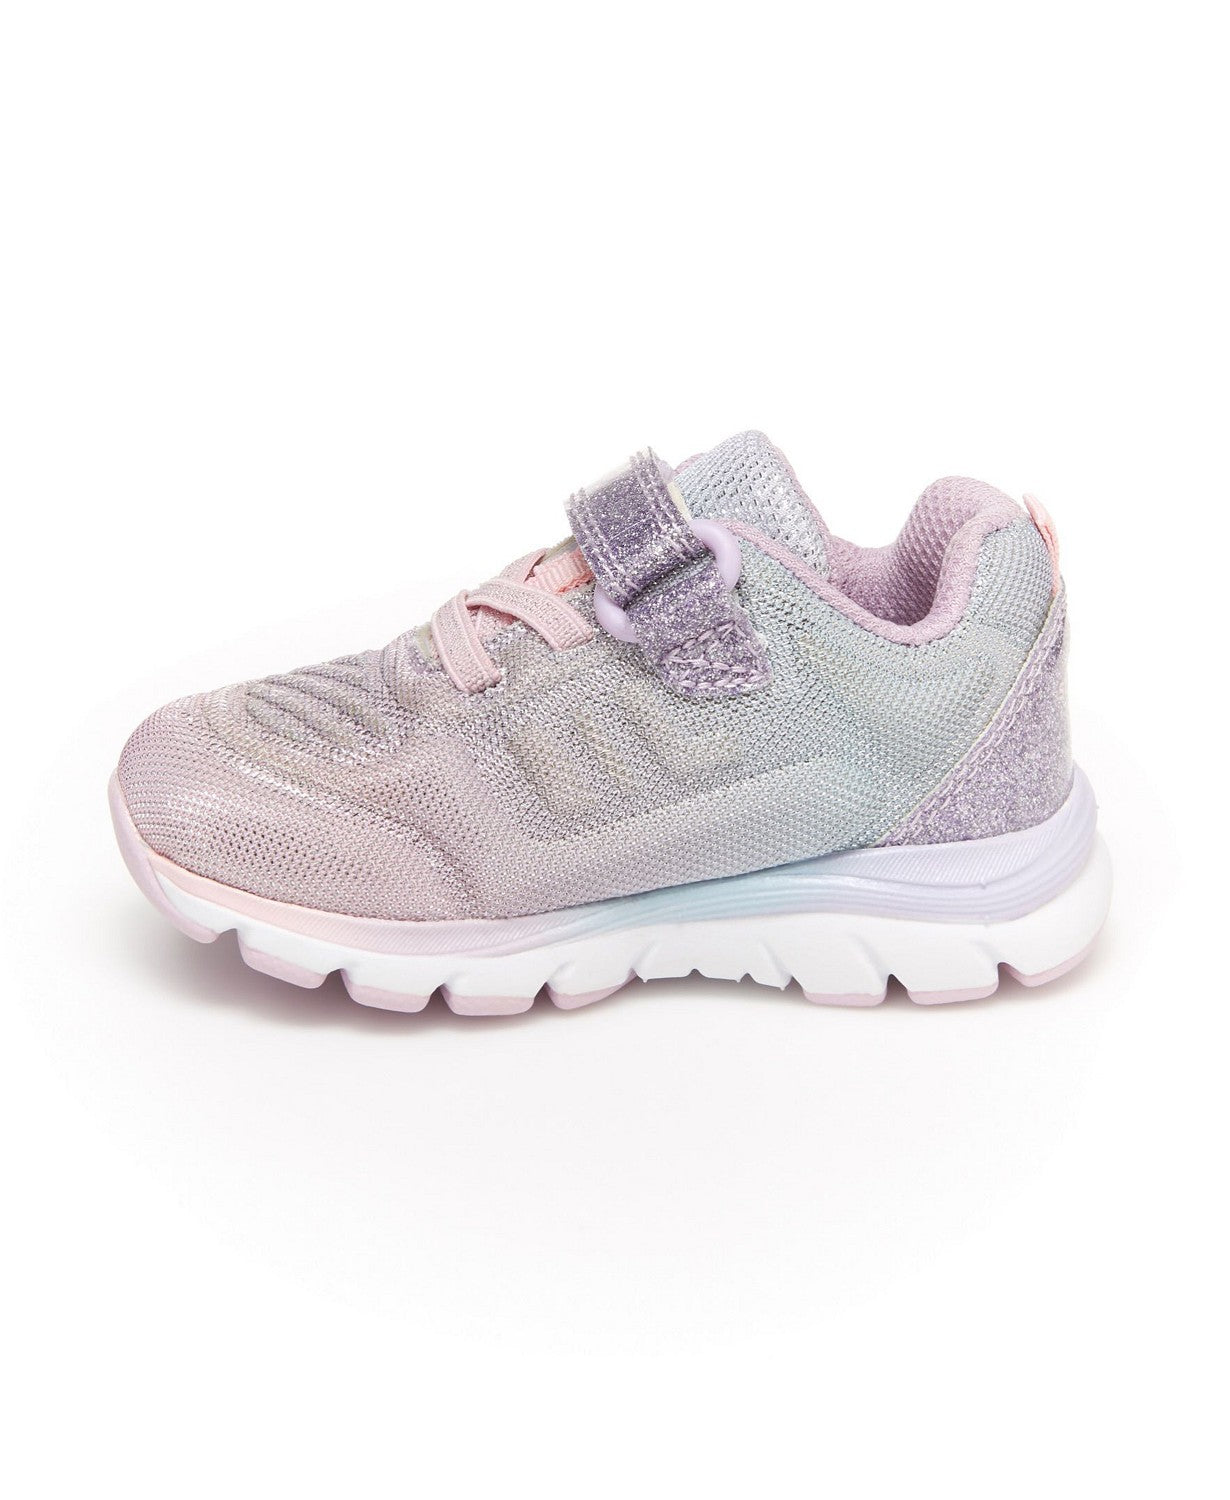 Made2Play Cora Sneaker - Pastel Multi